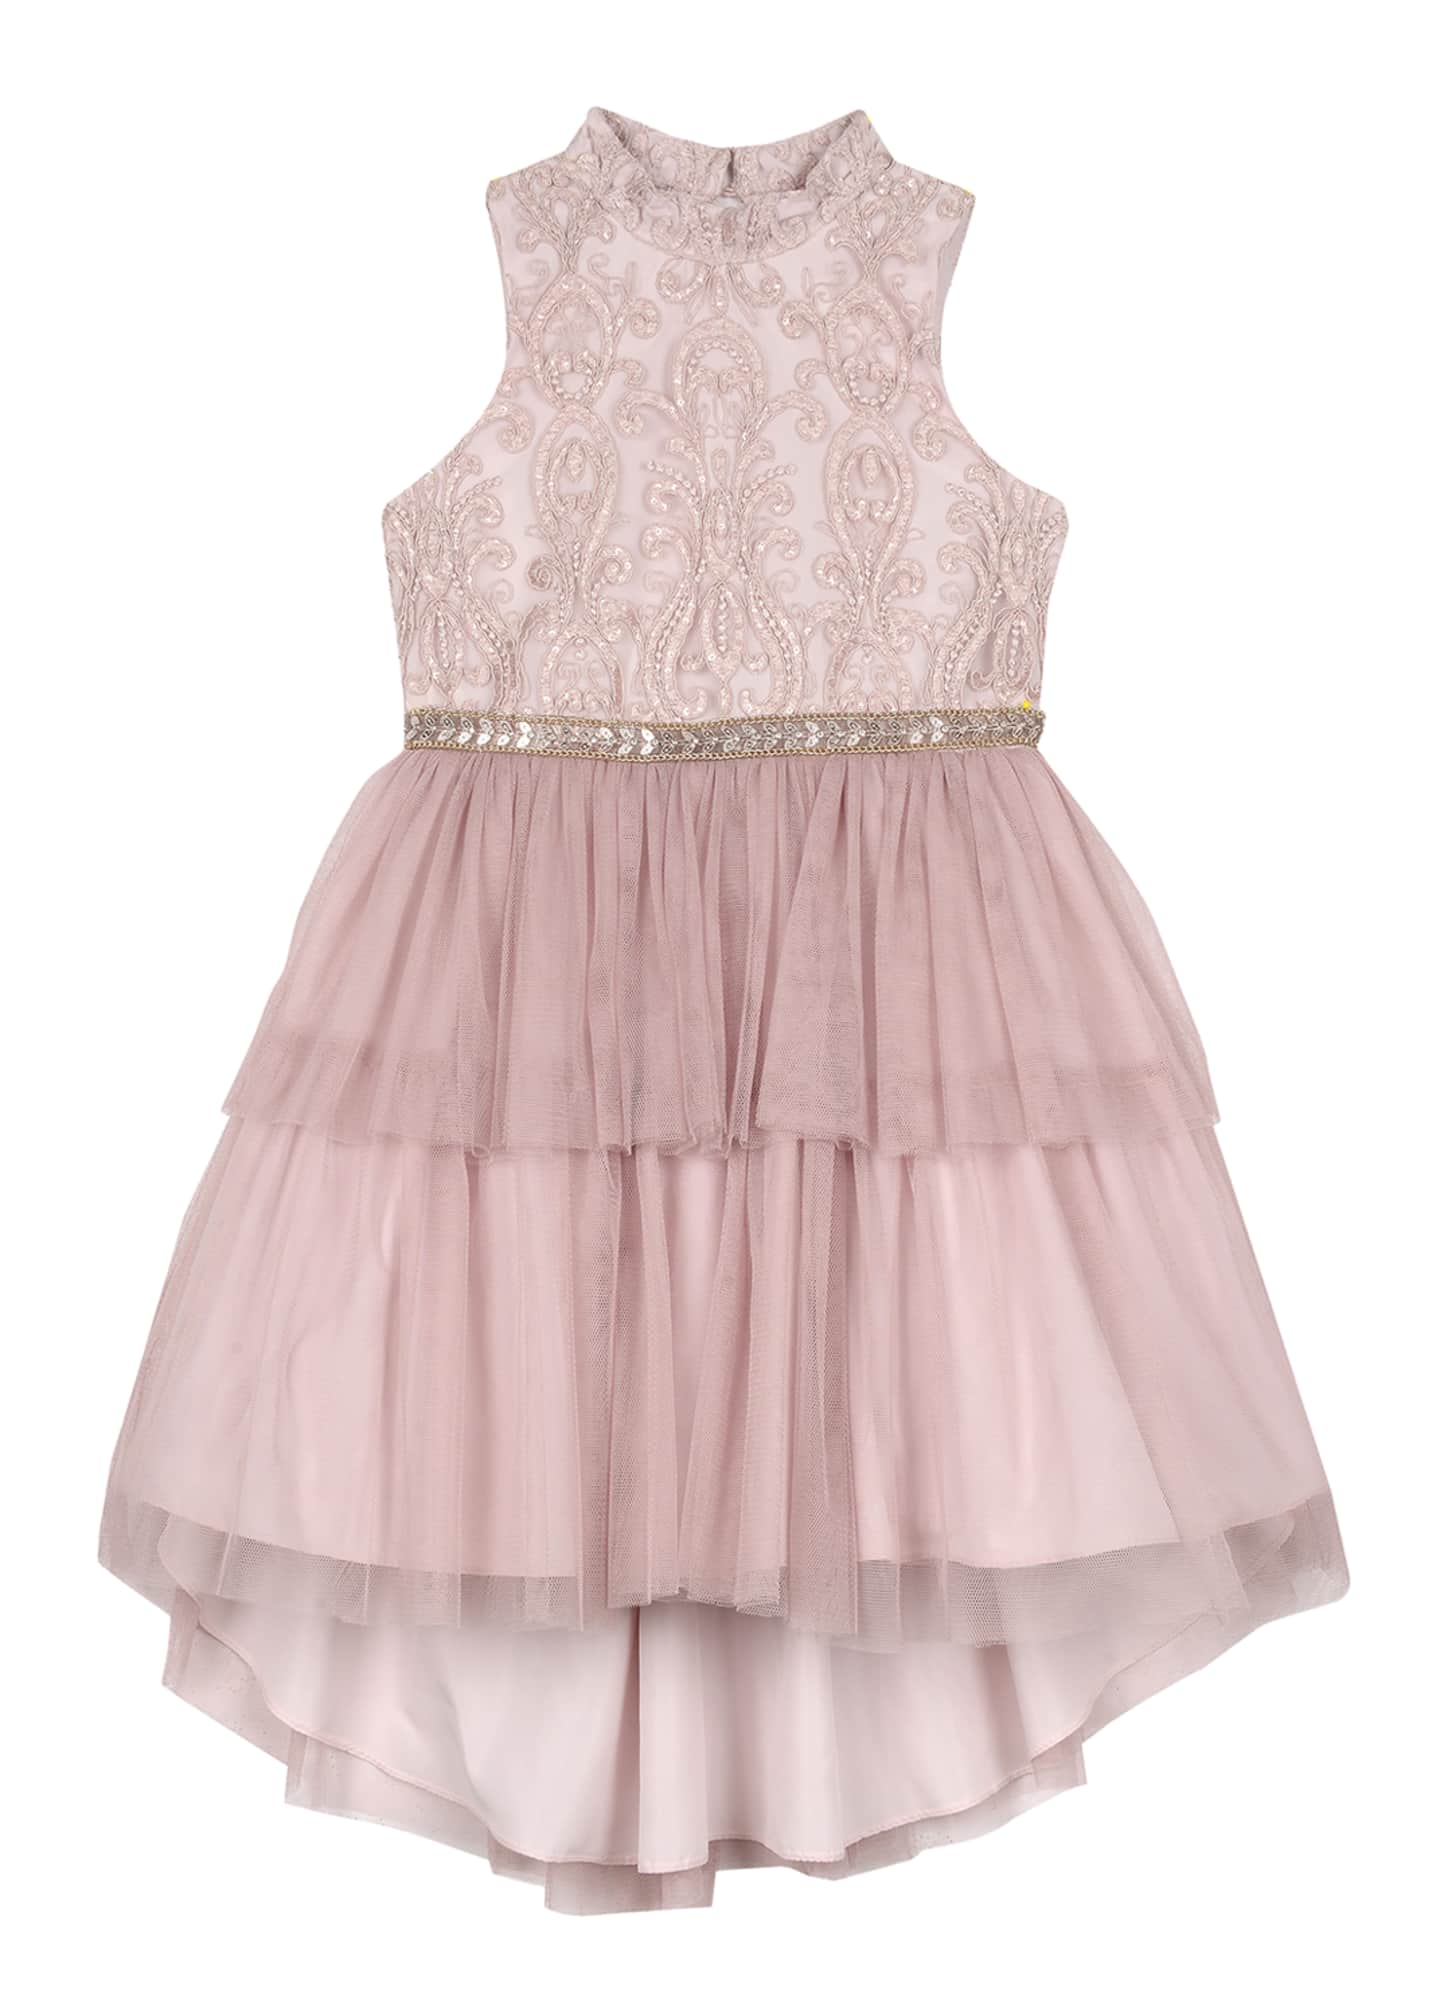 Badgley Mischka Kid's Embroidered Two-Tier Tutu Dress, Size